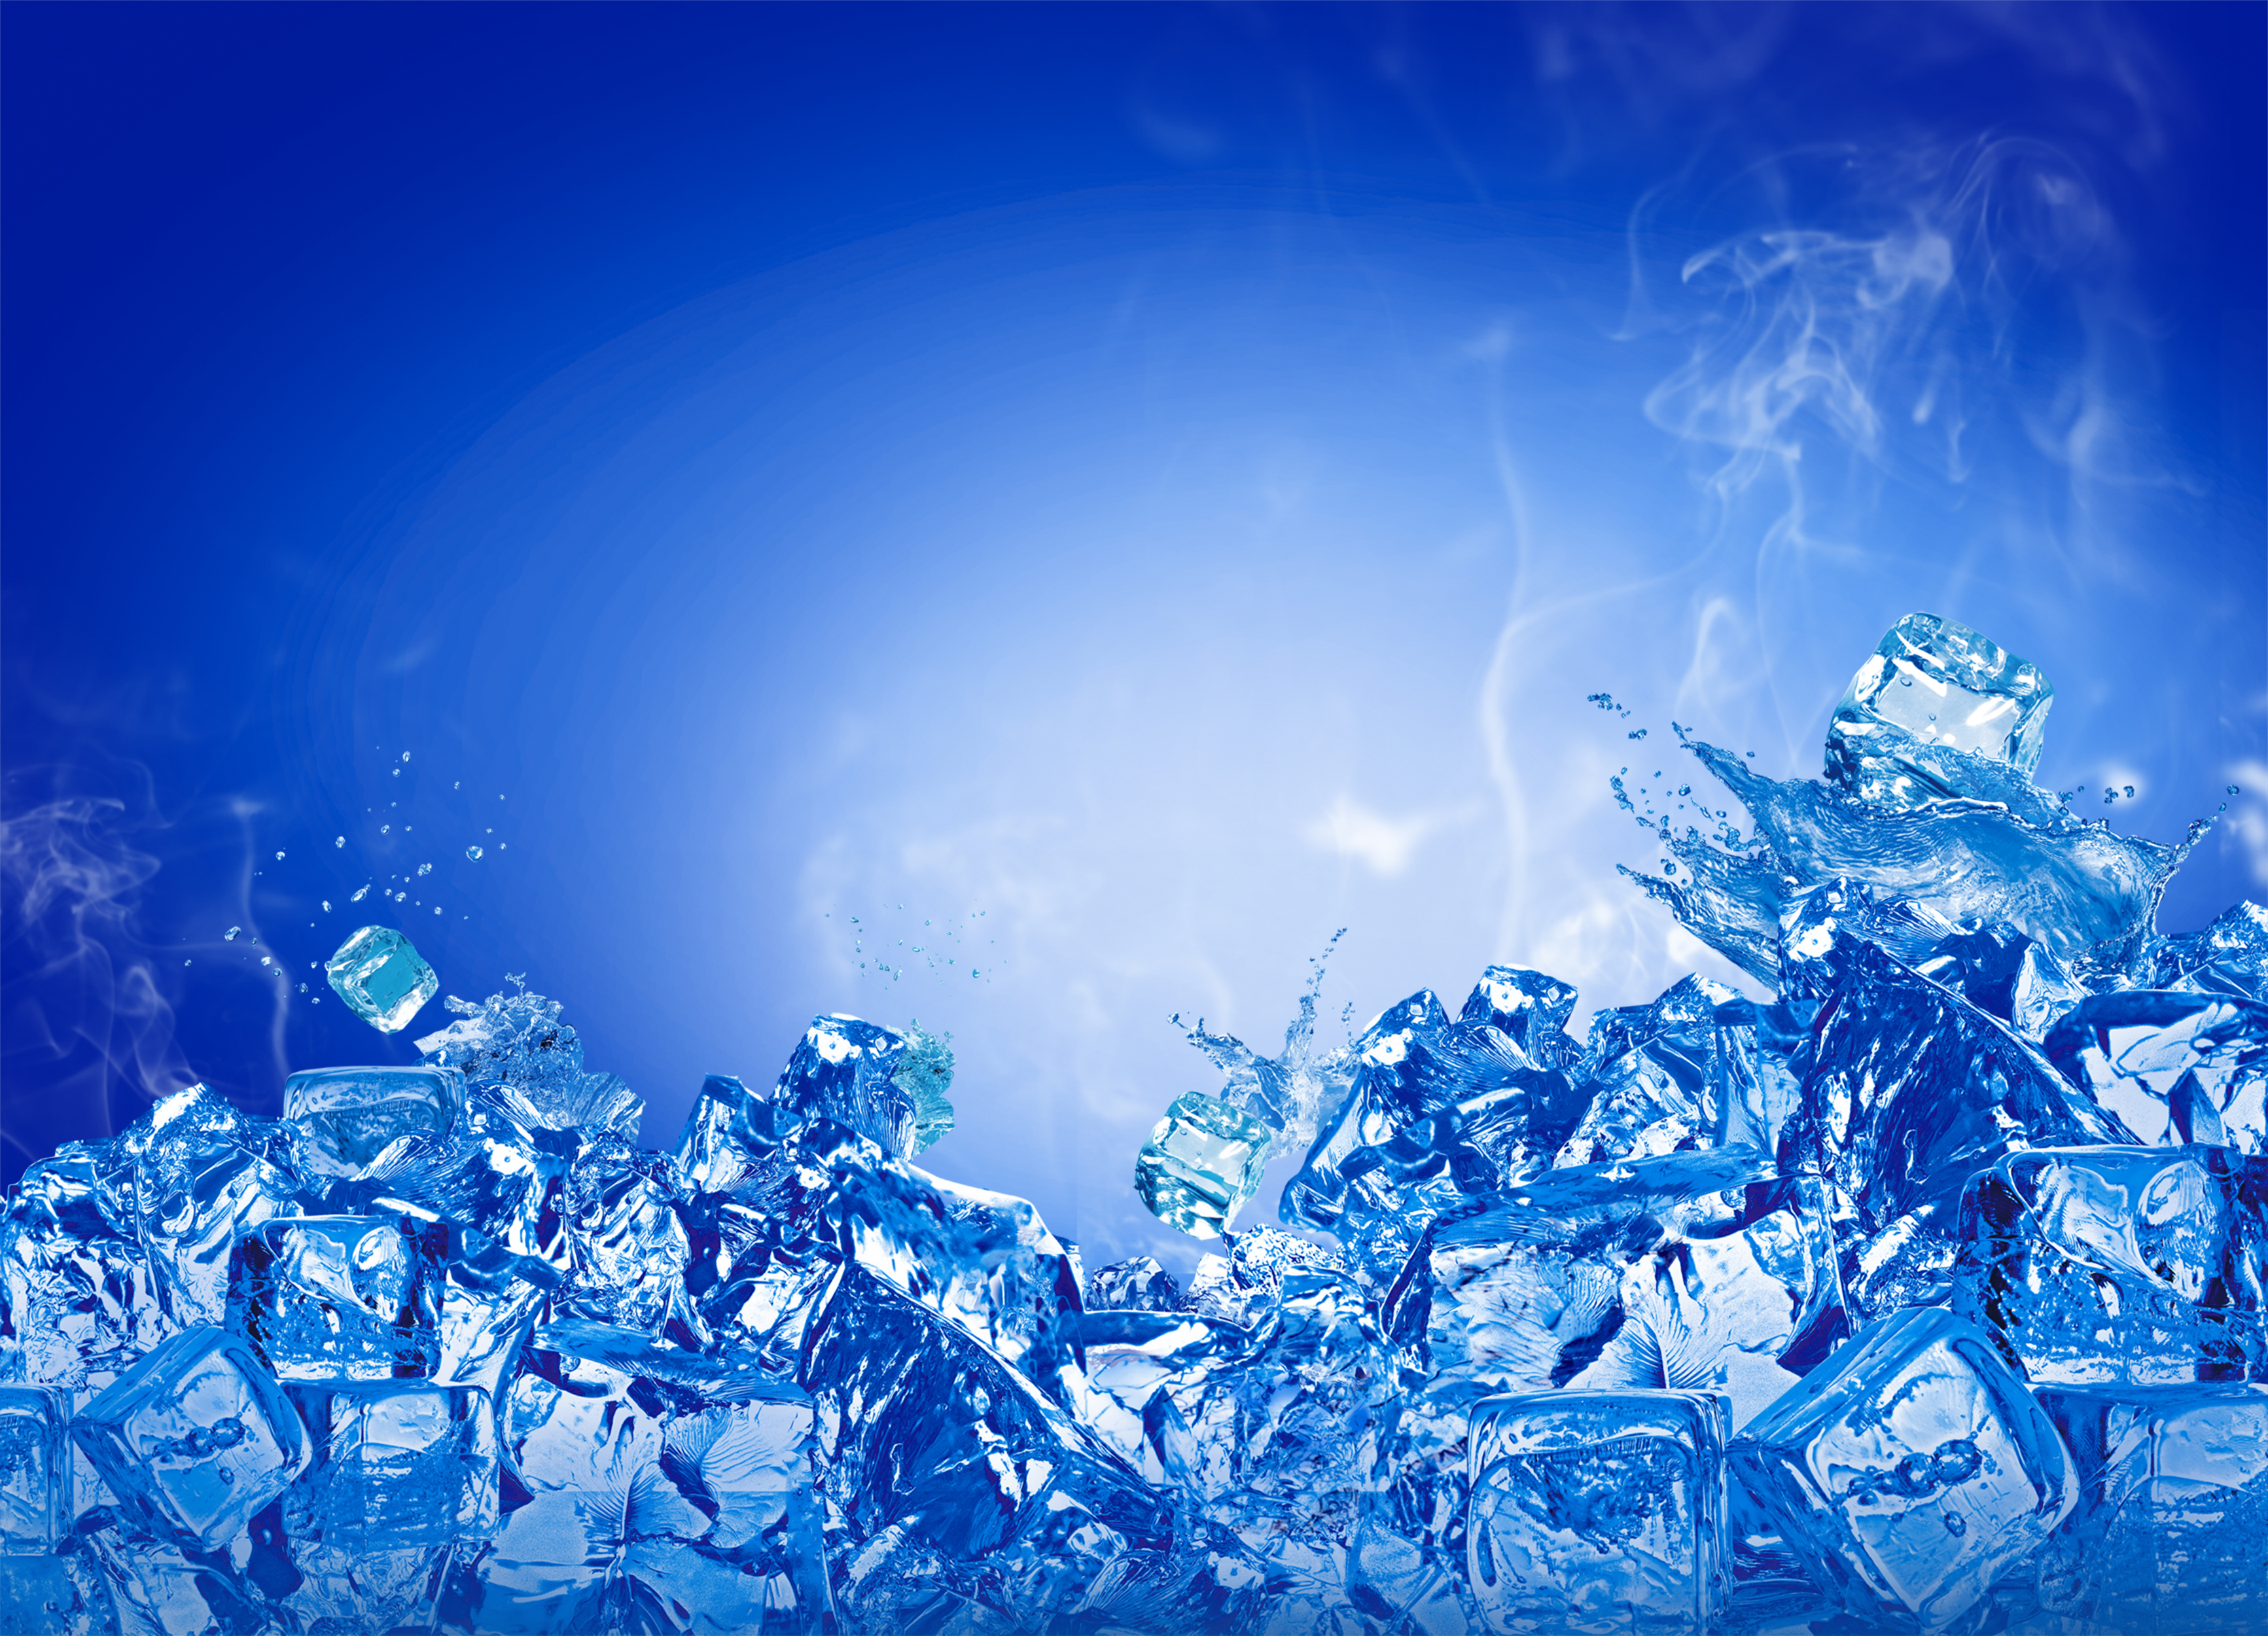 summer ice poster background  summer  ice  cubes